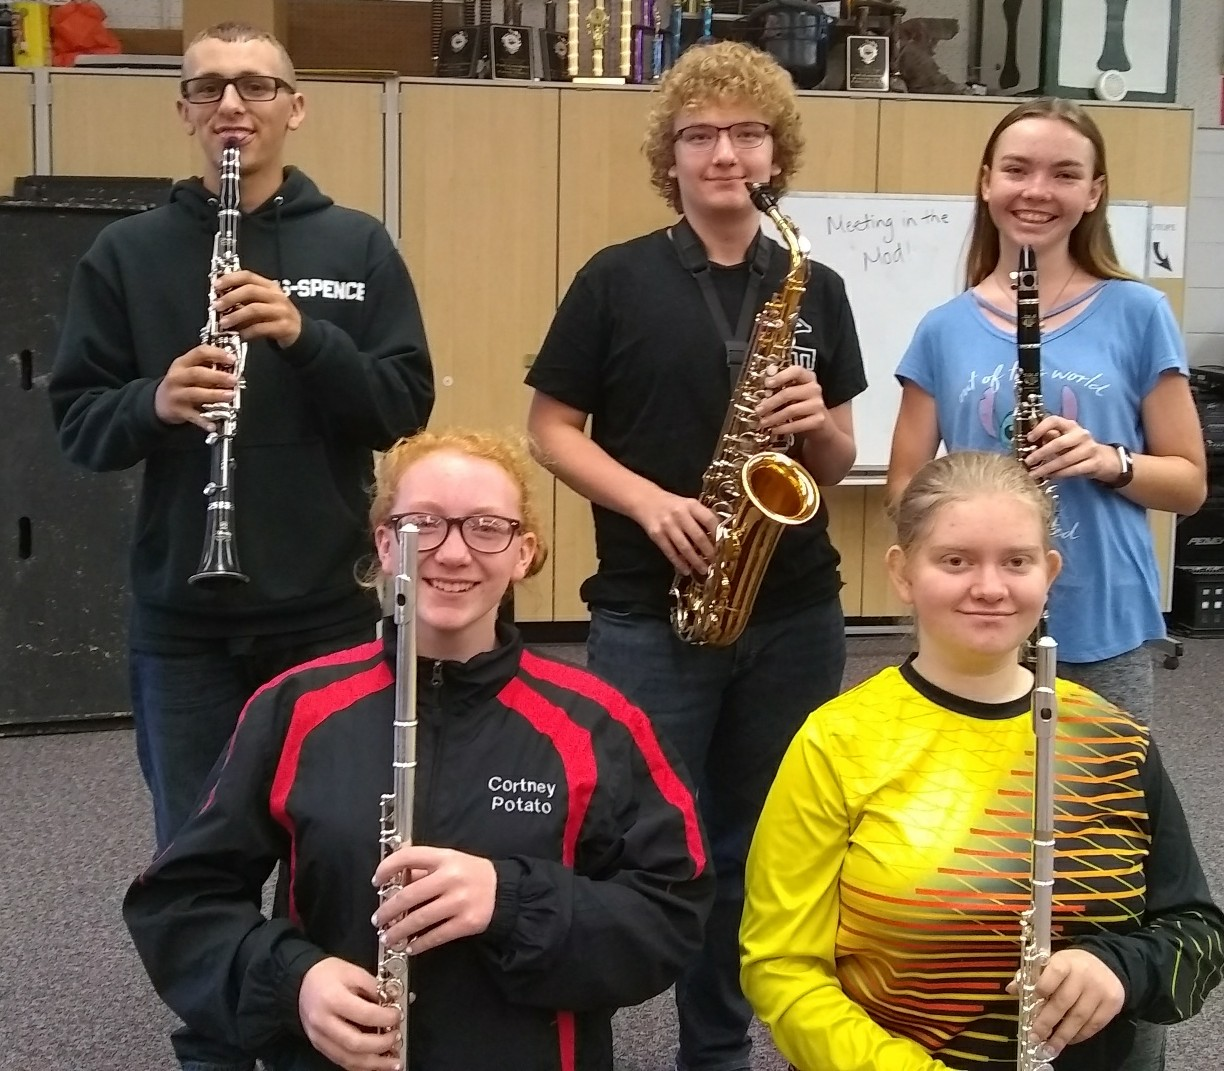 Spencer Carranza, Timur Brainard, Shaylin Prickett, Cortney McCausey, and Alexis Williams holding their instruments in the Highland band room after band class.